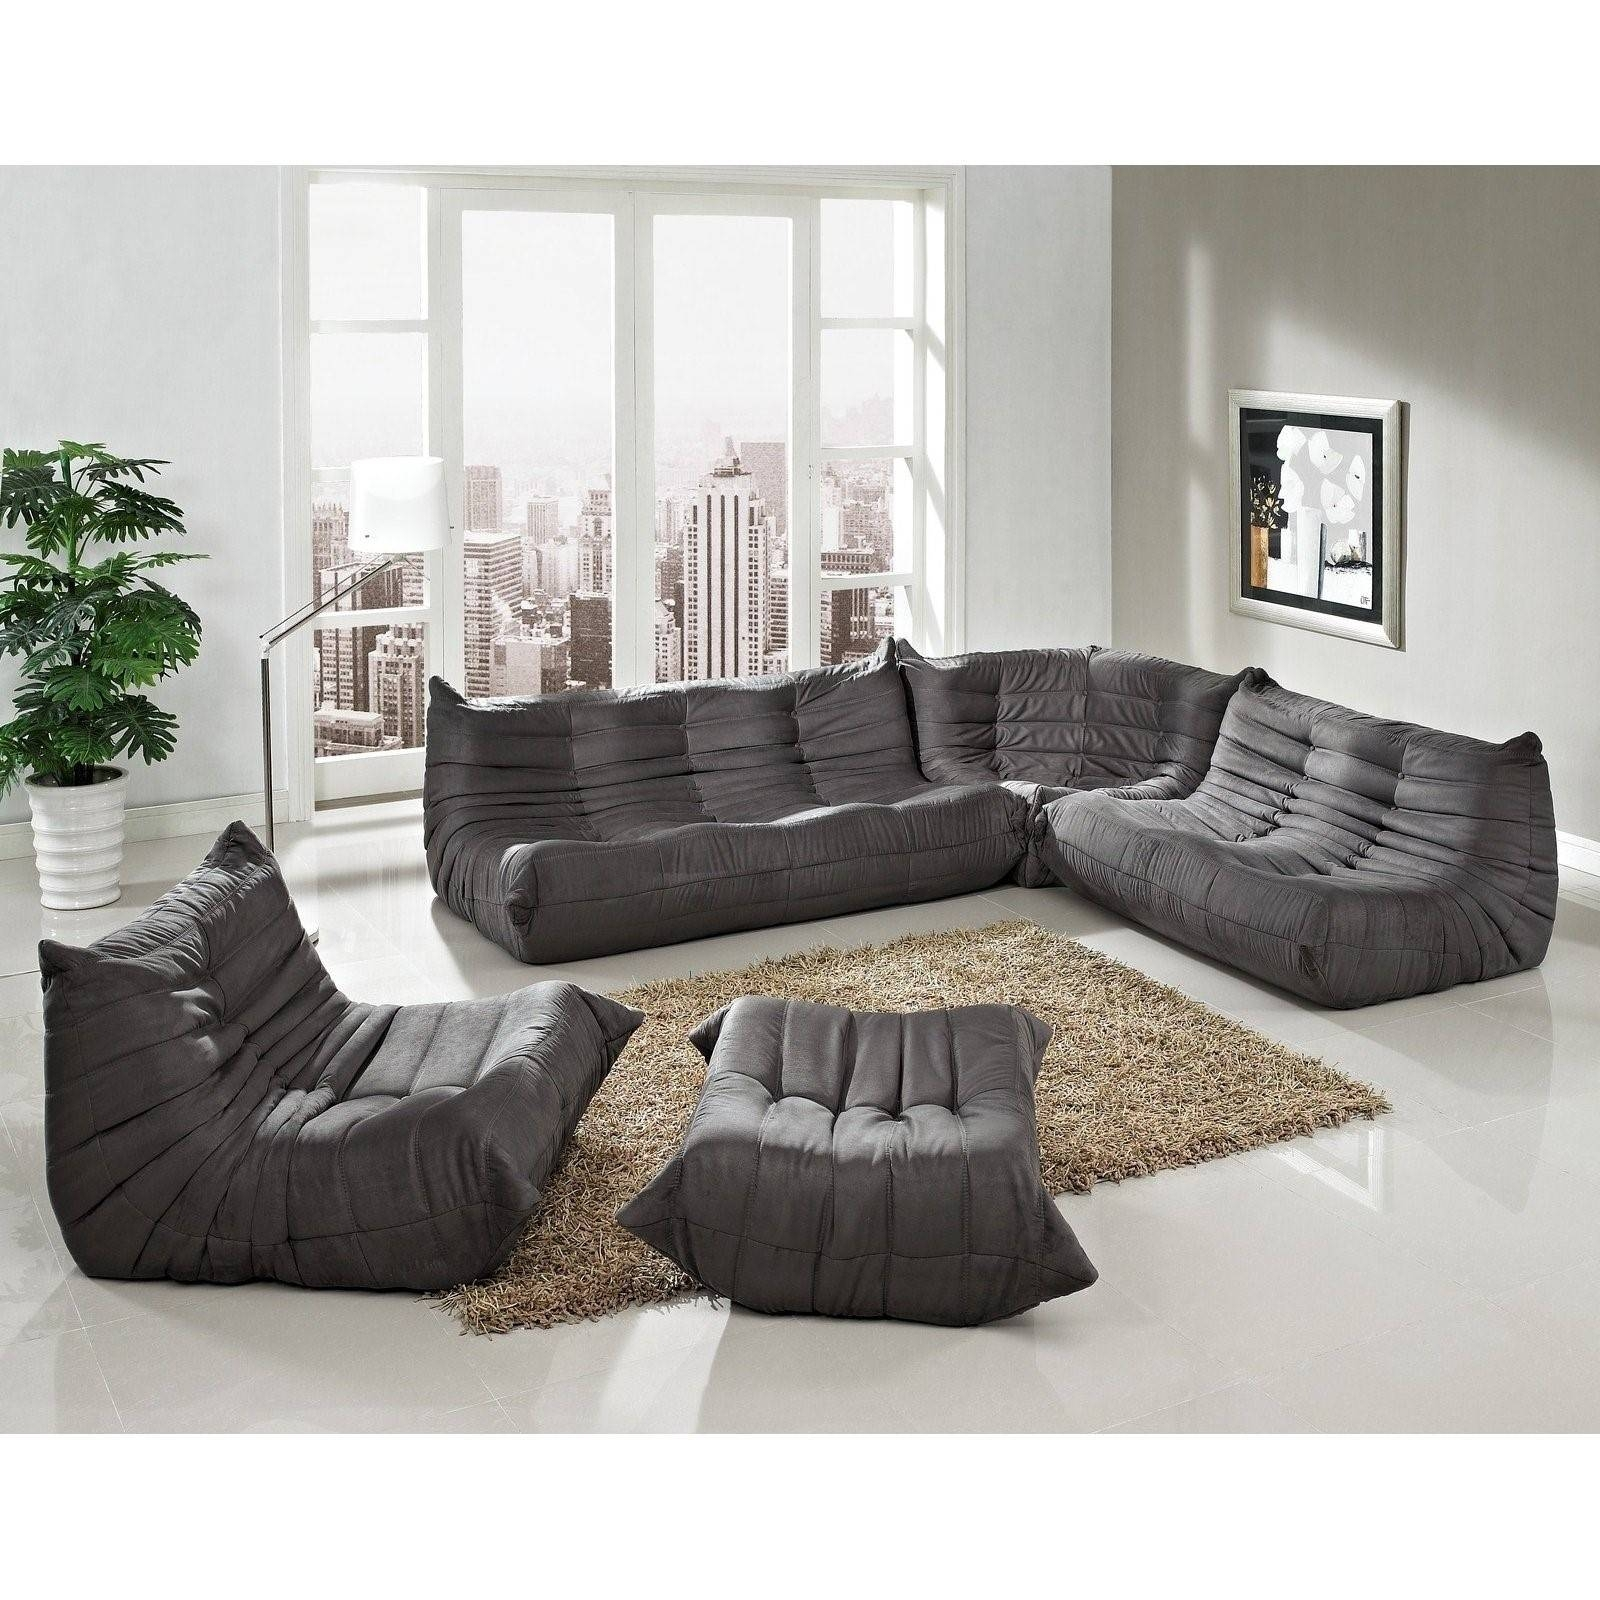 12 Ideas Of 10 Foot Sectional Sofa With 10 Foot Sectional Sofa (Image 8 Of